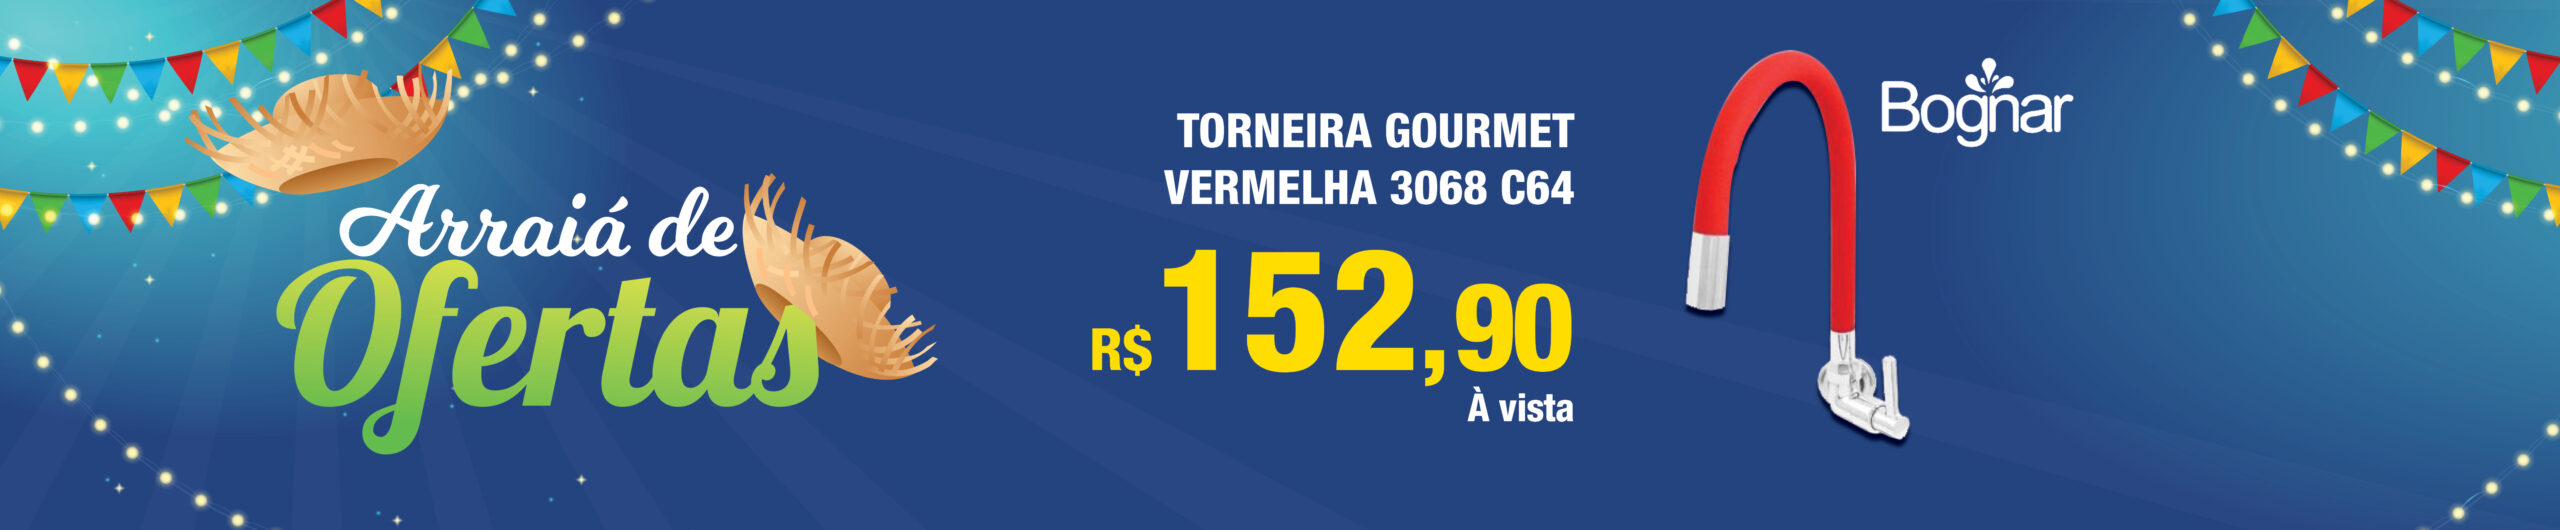 SIMOES_BANNER_SITE_ARRAIA_OFERTAS3-scaled